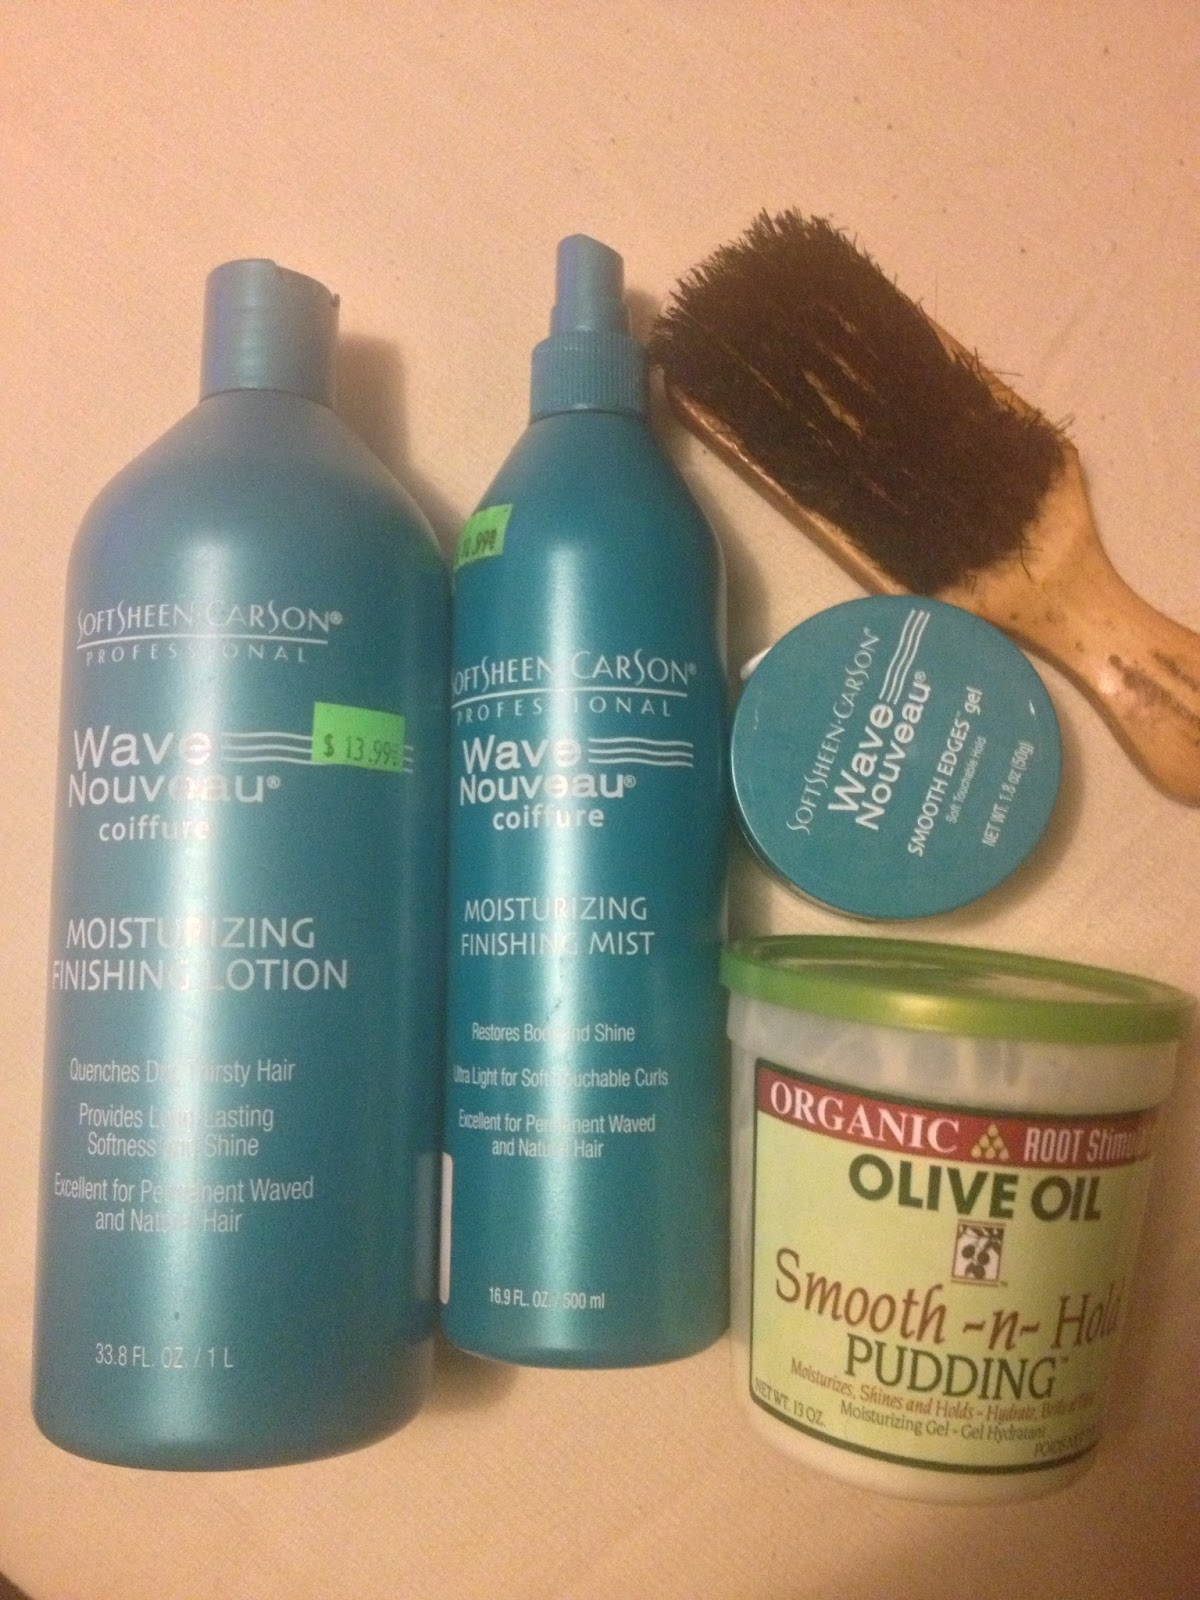 These Are The Wave Nouveau Products I Use